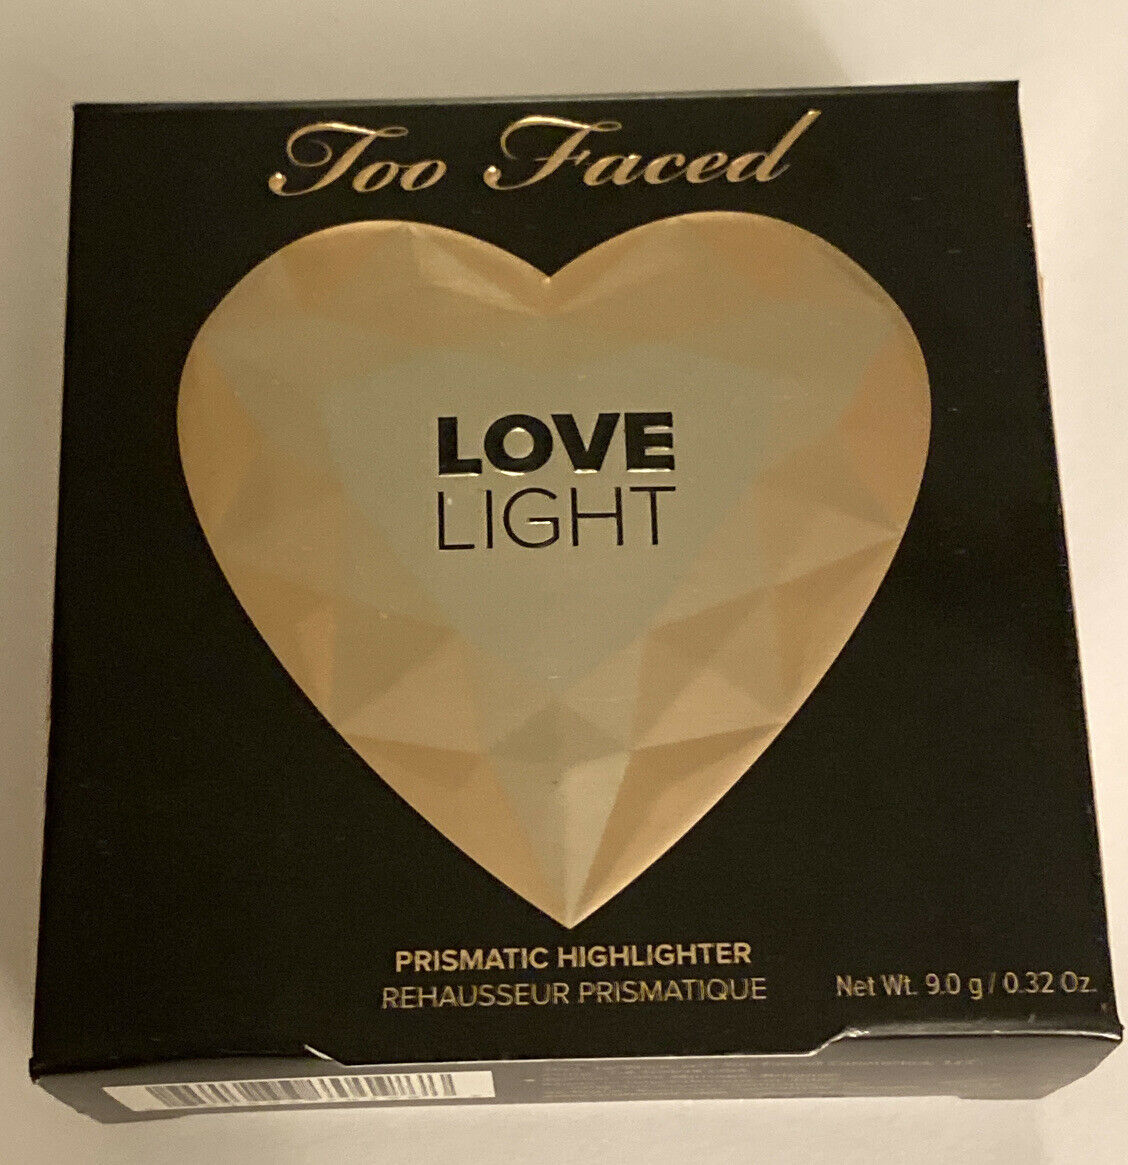 Too Faced Love Light Prismatic Highlighter - Blinded by the Light, Full Size - $16.83